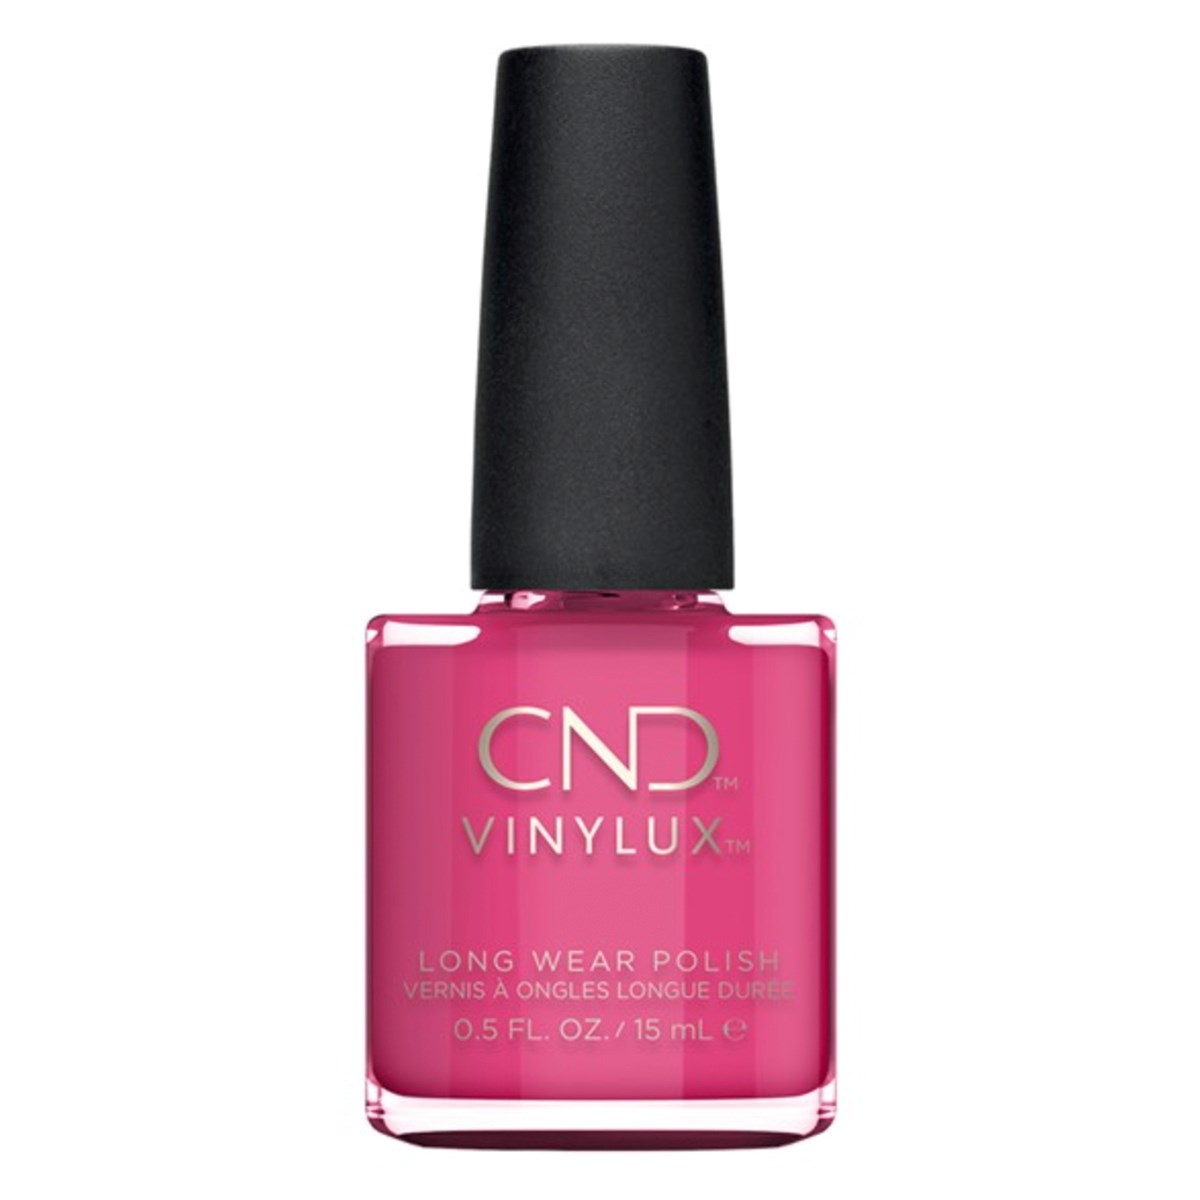 Vinylux Long Wear Polish, Pink Bikini #134